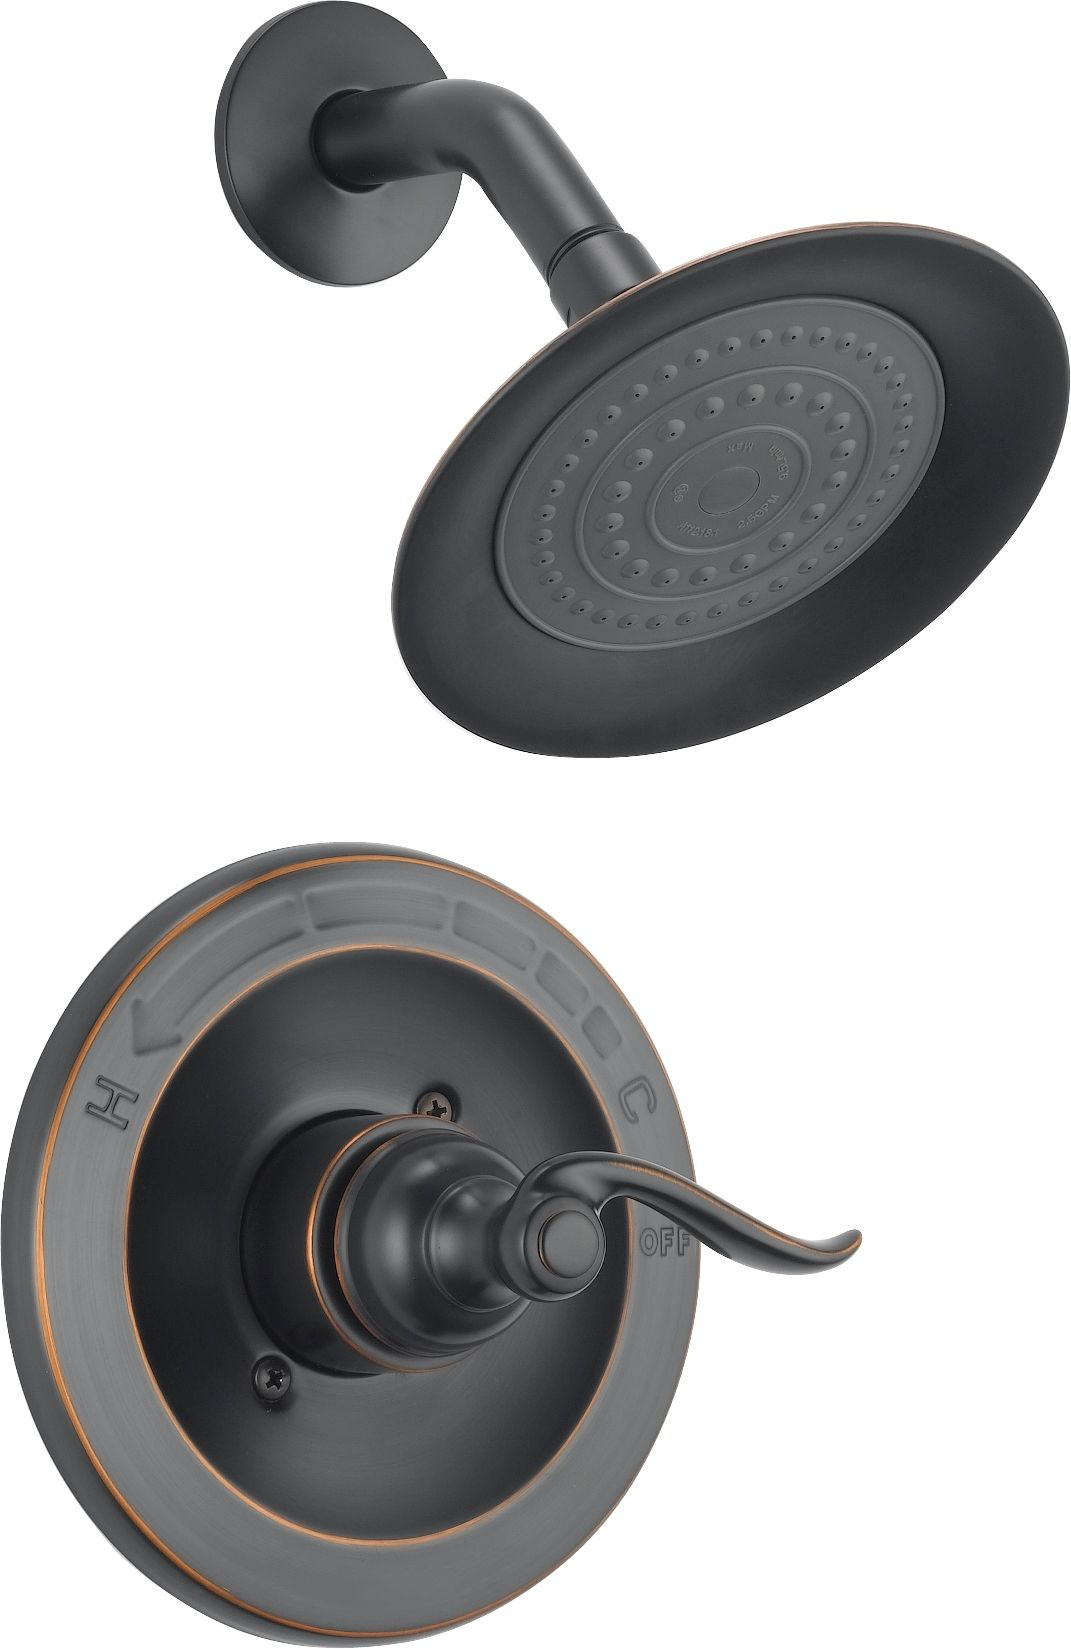 Delta Bt14296 Ob Oil Rubbed Bronze Windemere Monitor 14 Series Single Function Pressure Balanced Shower Trim Package Less Rough In Valve Faucet